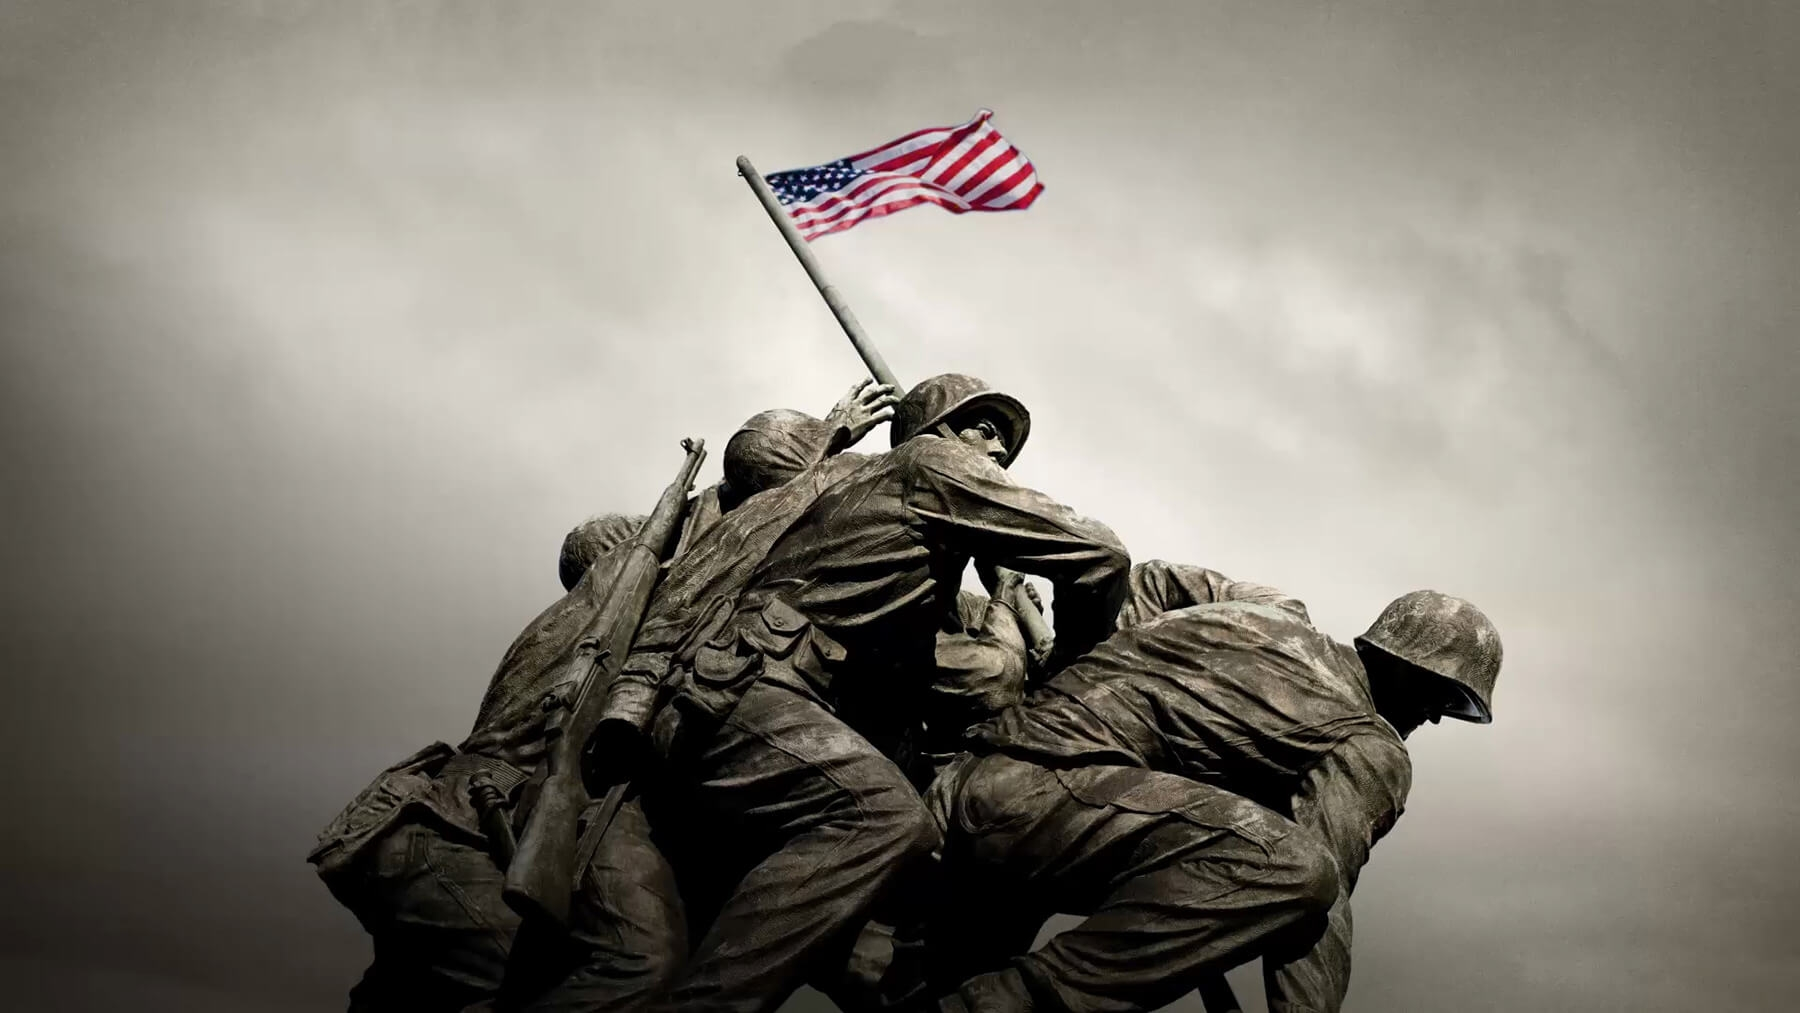 With gray skies in the background, an American flag waves in the wind atop the Iwo Jima Memorial at the U.S. Marine War Memorial in Washington, D.C.